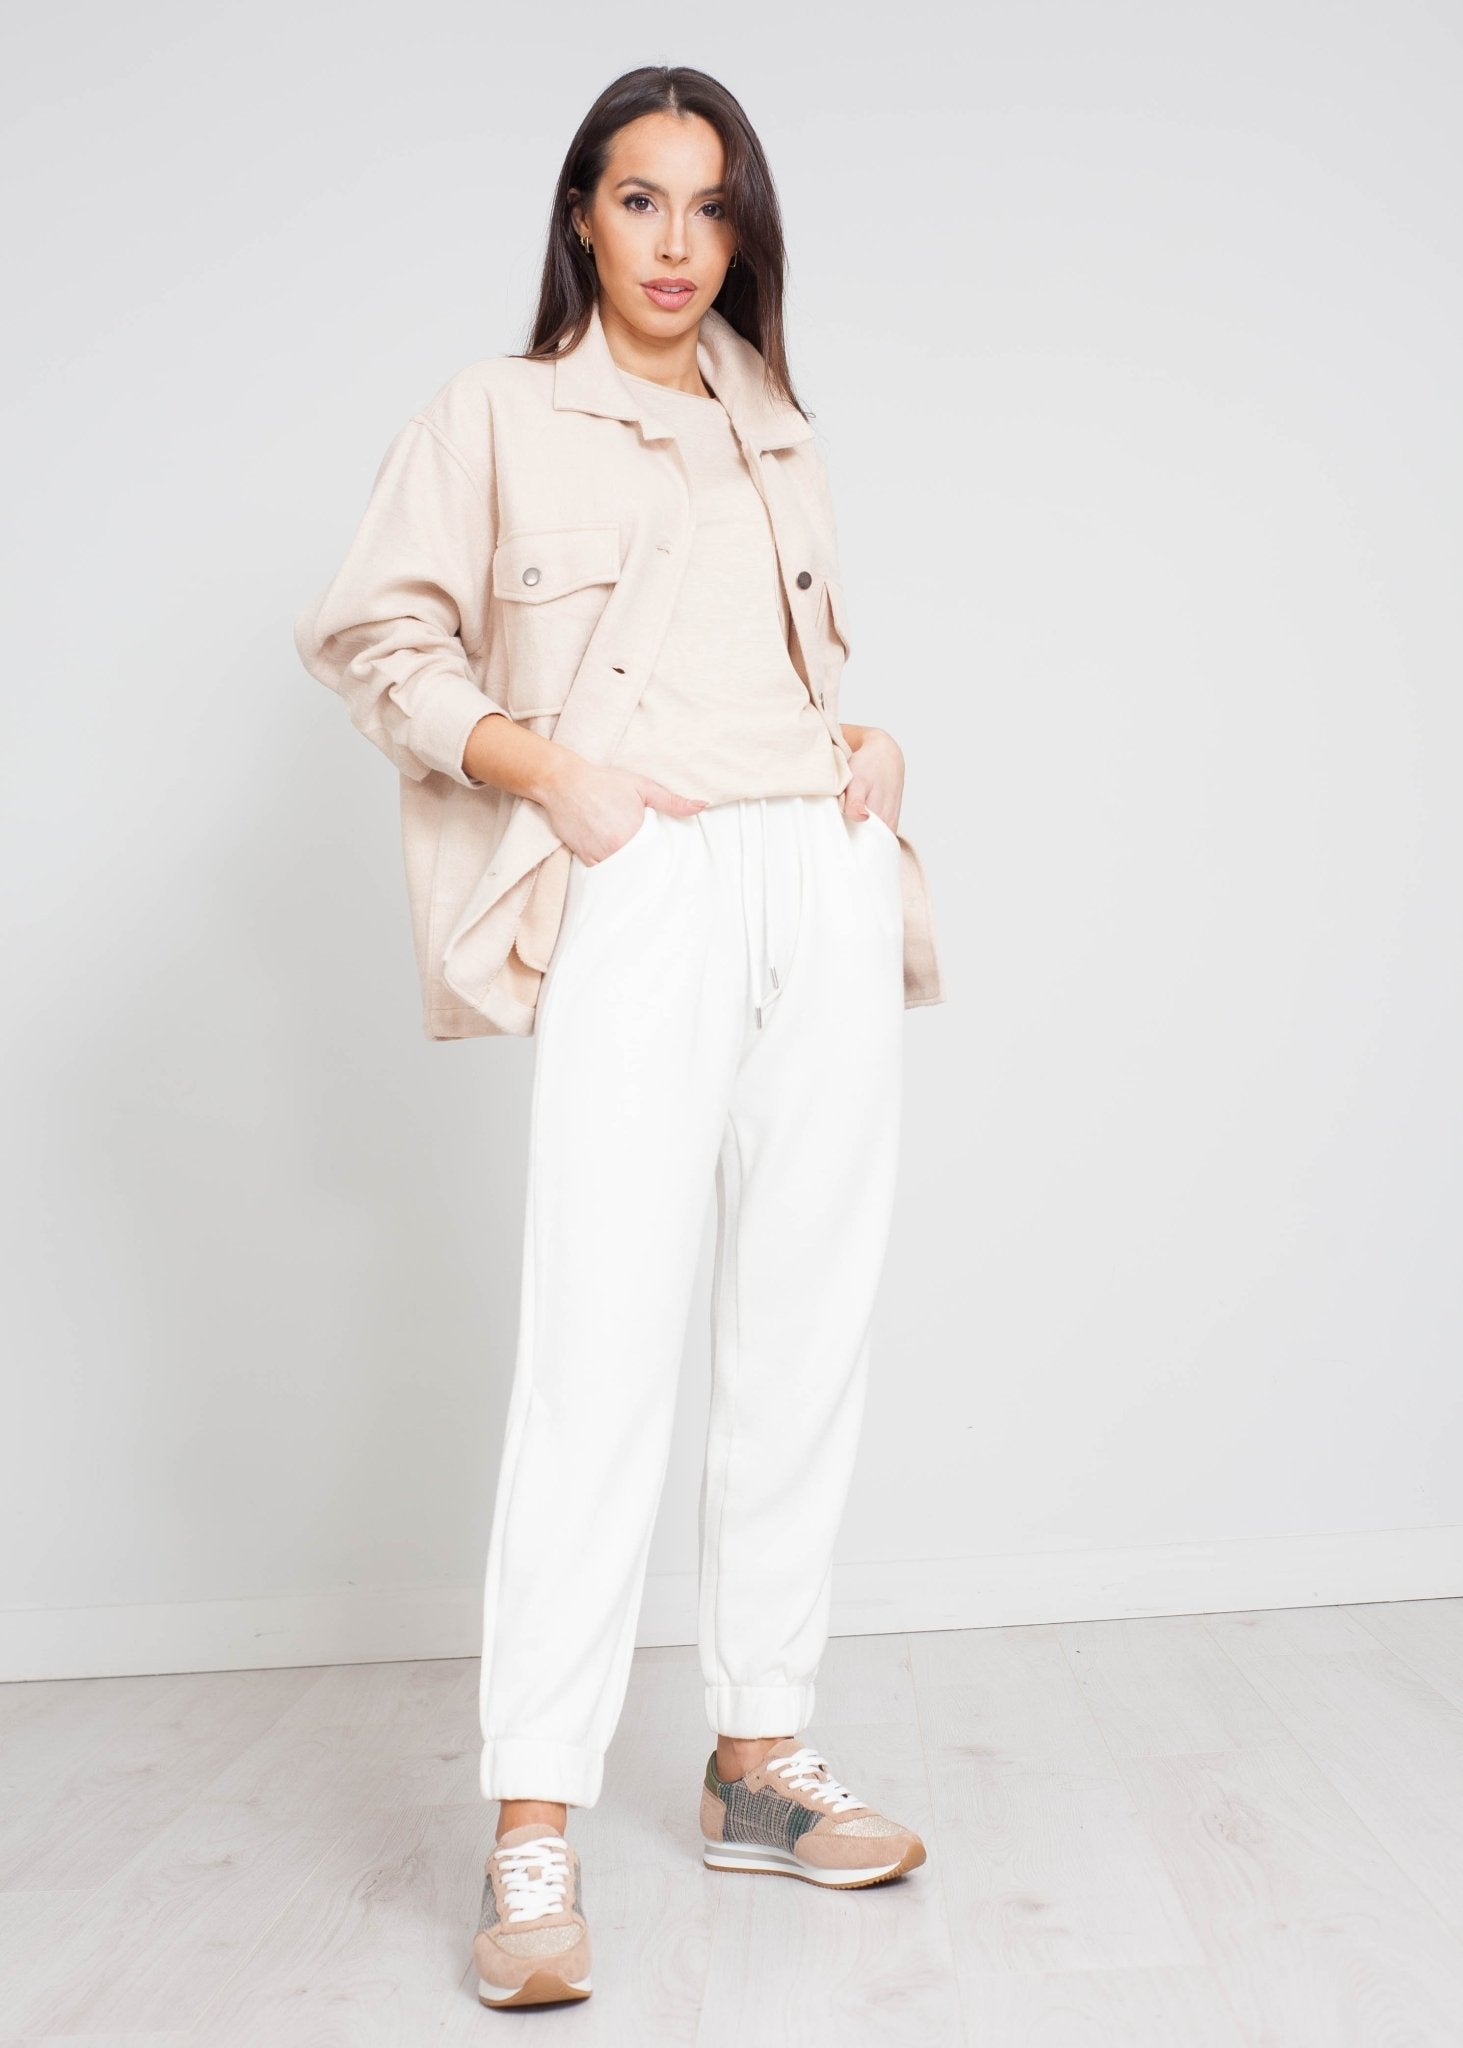 Danni Knit Joggers In Cream - The Walk in Wardrobe